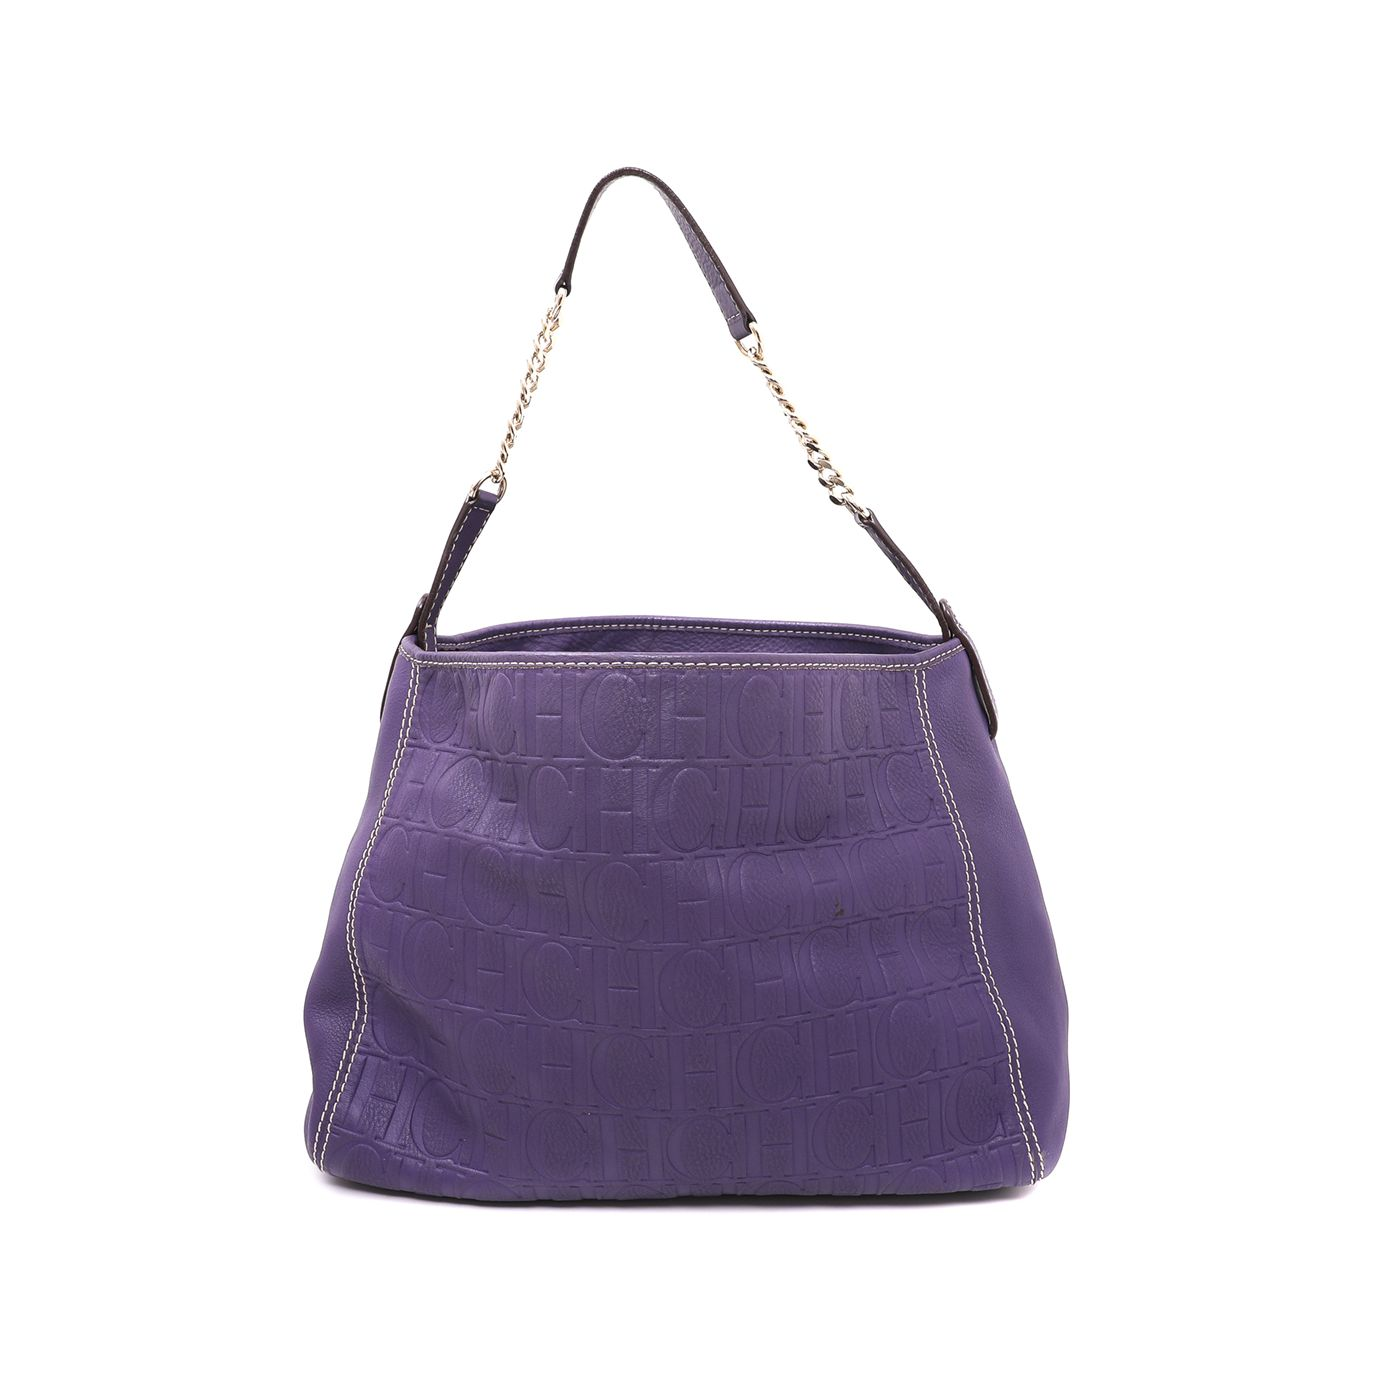 Carolina Herrera Purple Monogram Soft Open Shoulder Bag